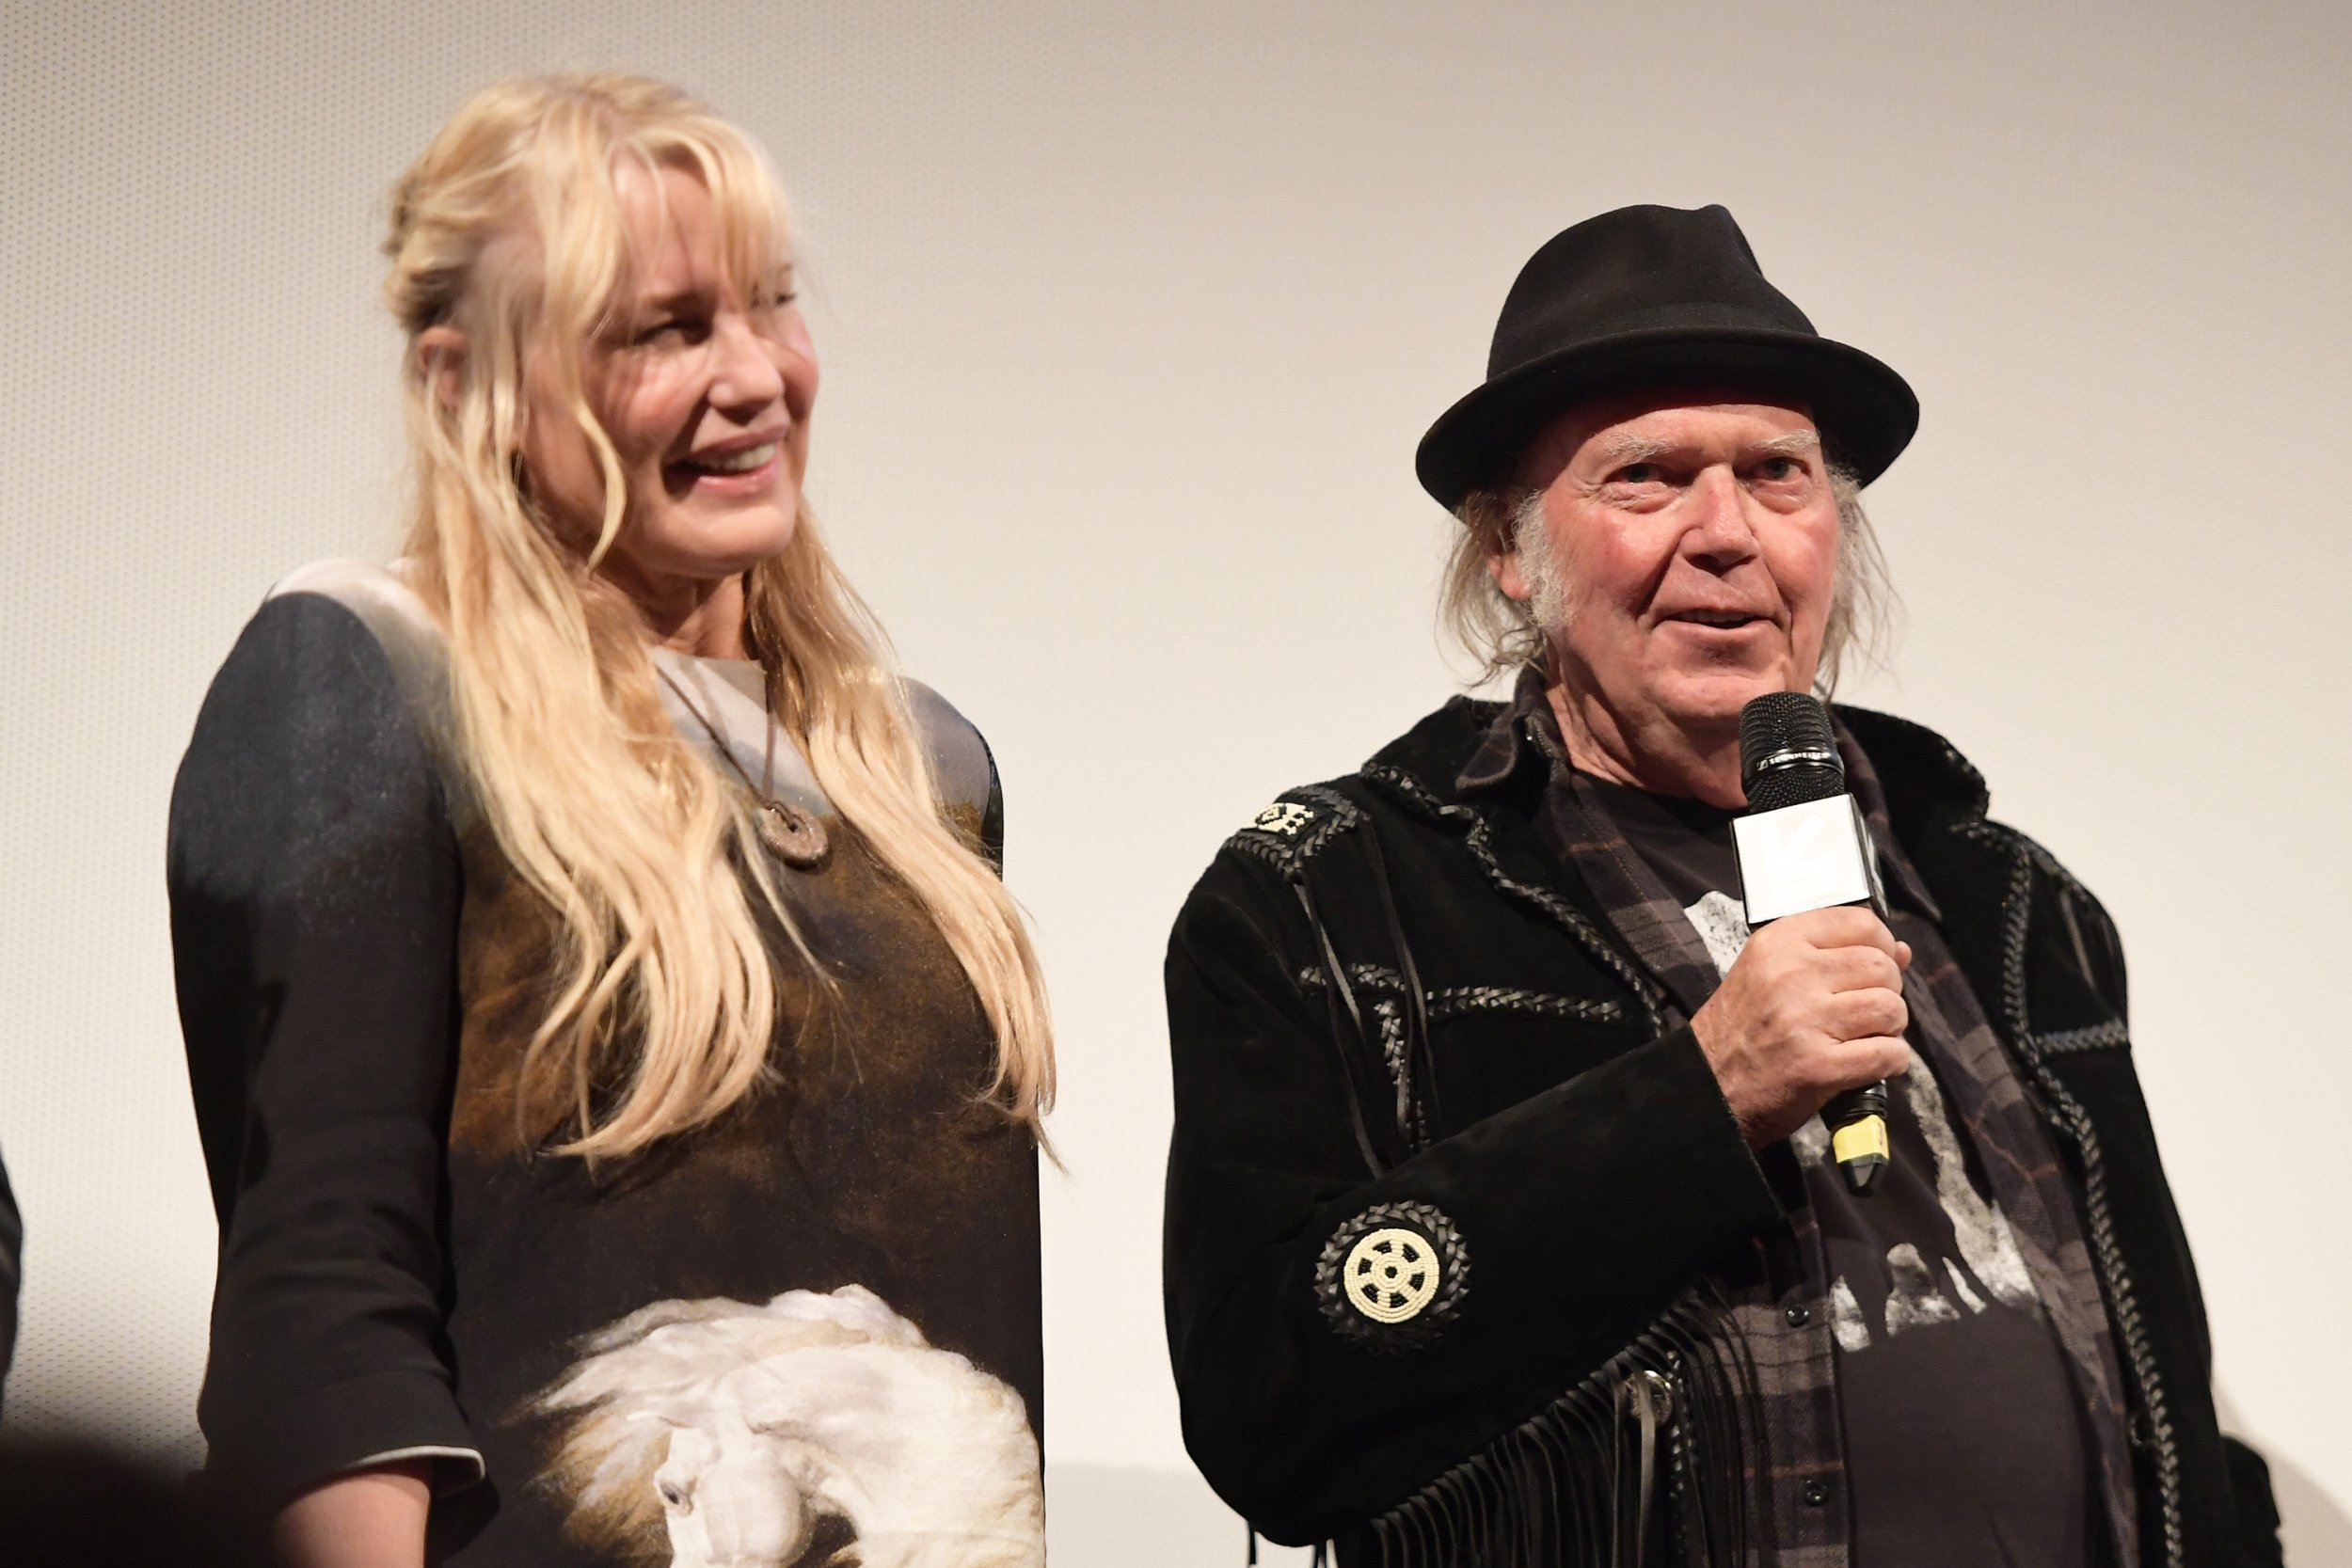 """AUSTIN, TX - MARCH 15: Daryl Hannah and Neil Young attend the """"Paradox"""" Premiere 2018 SXSW Conference and Festivals at Paramount Theatre on March 15, 2018 in Austin, Texas. (Photo by Matt Winkelmeyer/Getty Images for SXSW)"""